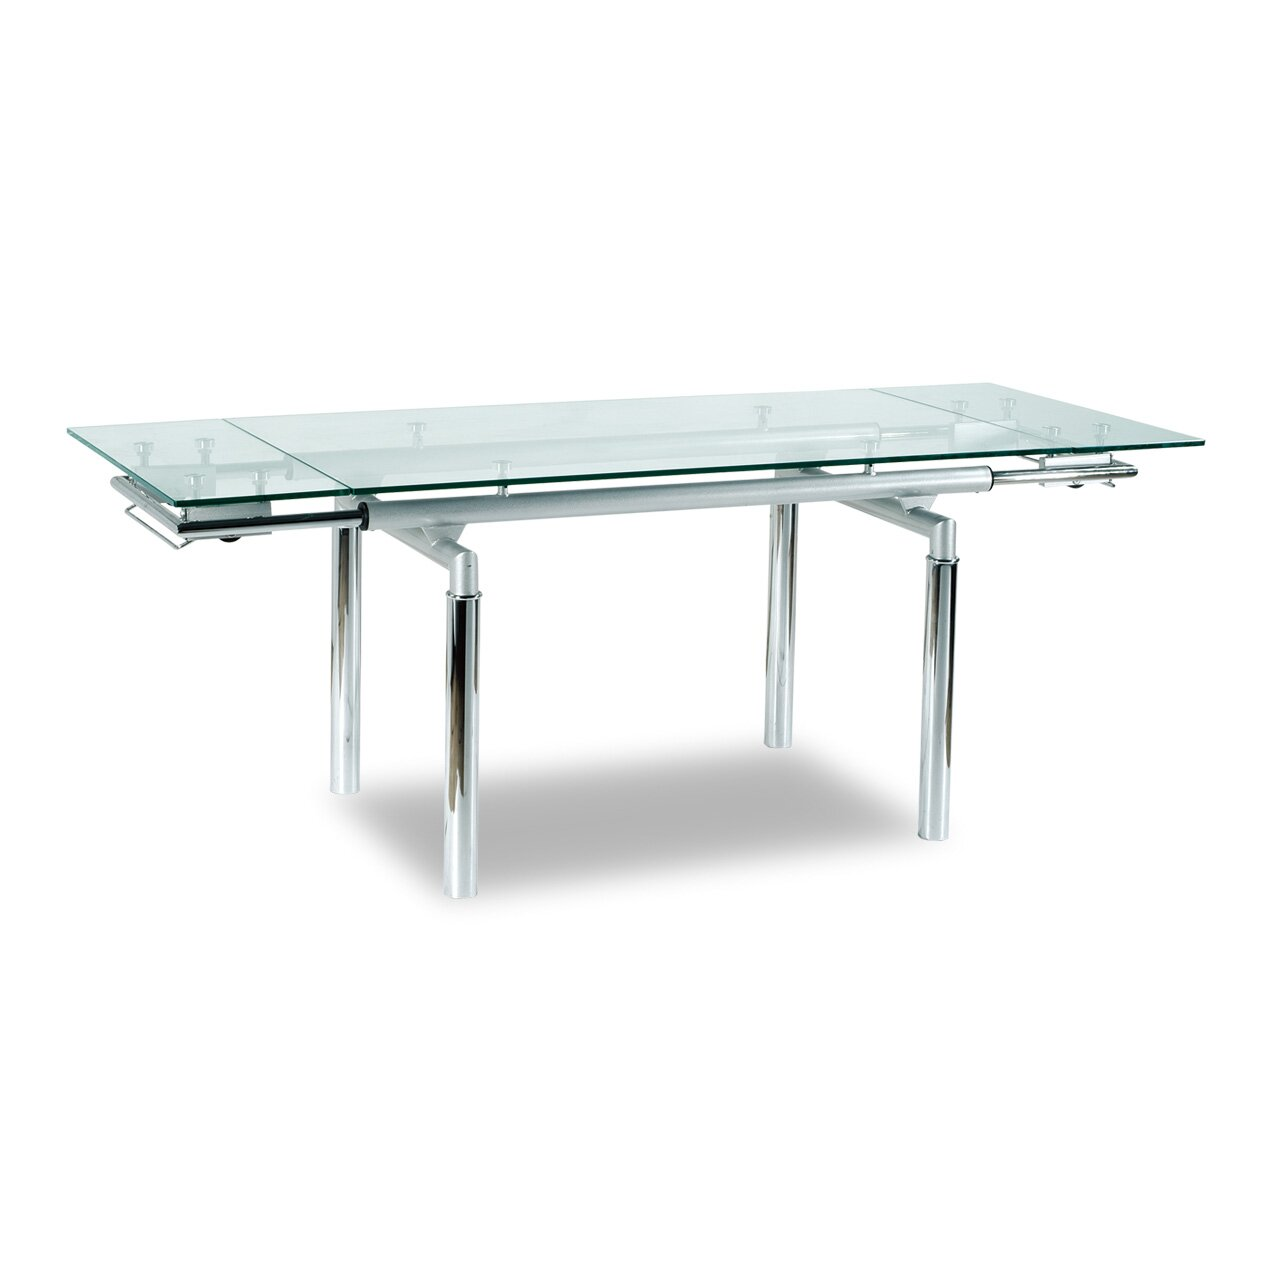 At Home USA Lazzaro Extendable Dining Table amp Reviews  : LazzaroExtendableDiningTable from www.wayfair.ca size 1261 x 1261 jpeg 47kB